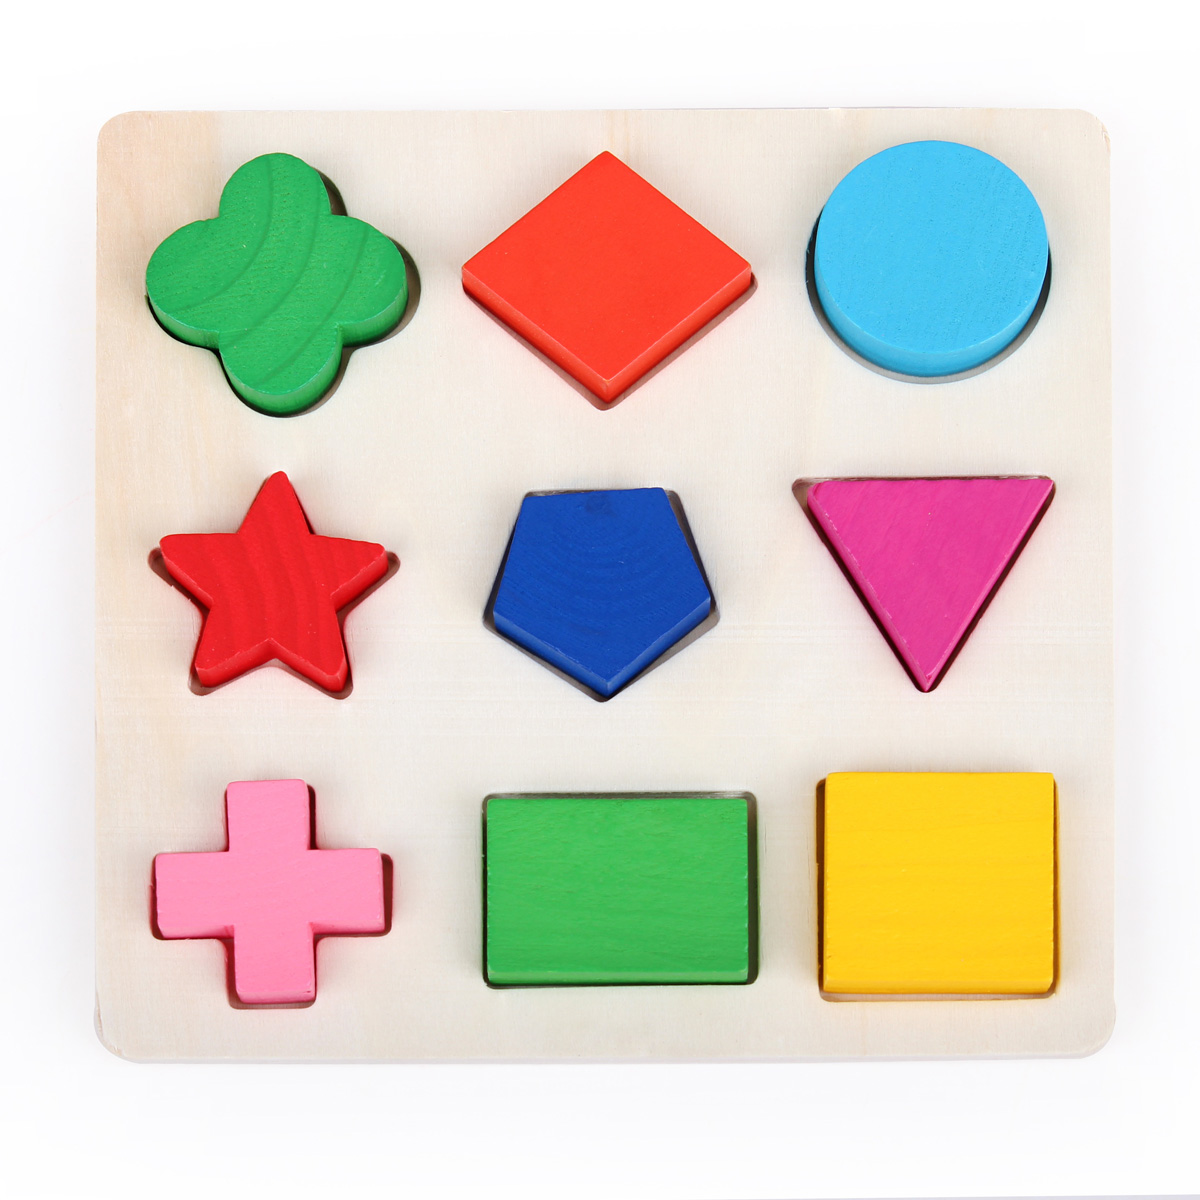 Popular Geometry Shapes Games-Buy Cheap Geometry Shapes